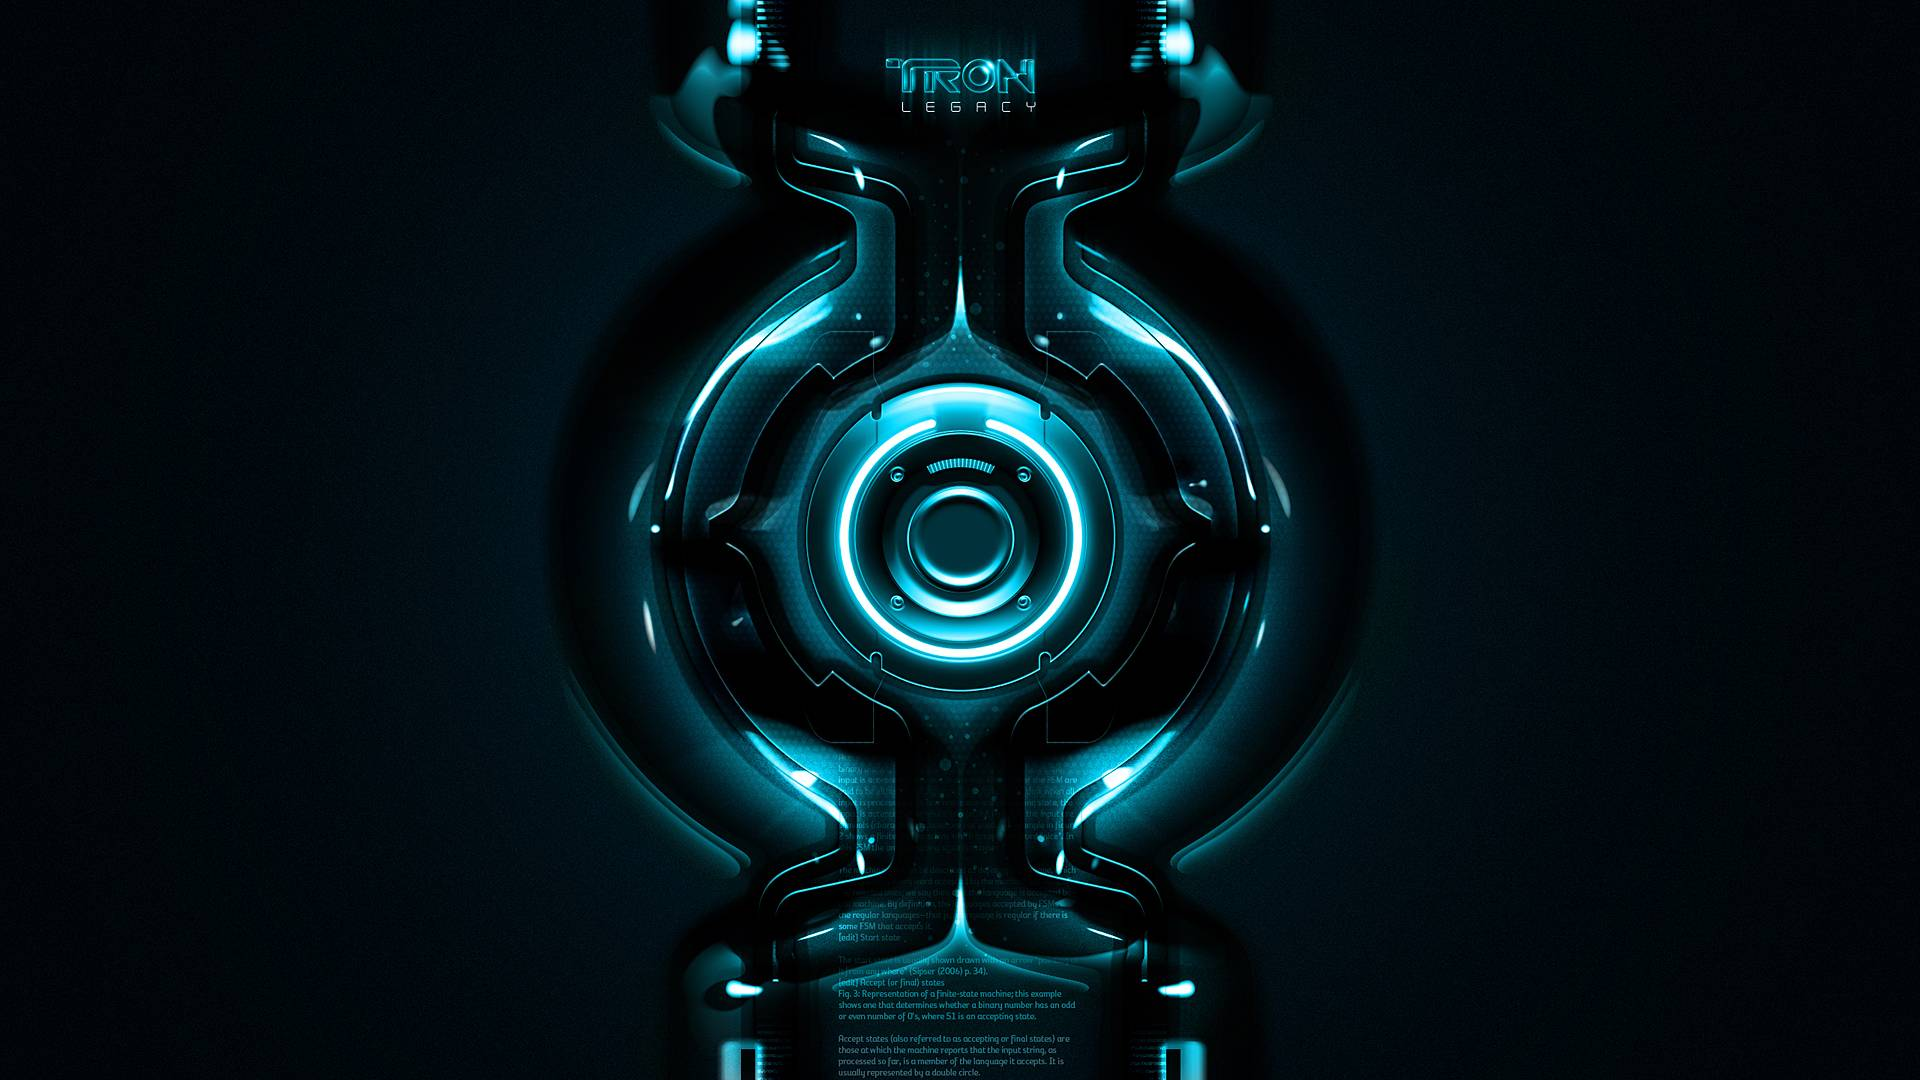 awesome tronlegacy wallpapers - photo #33